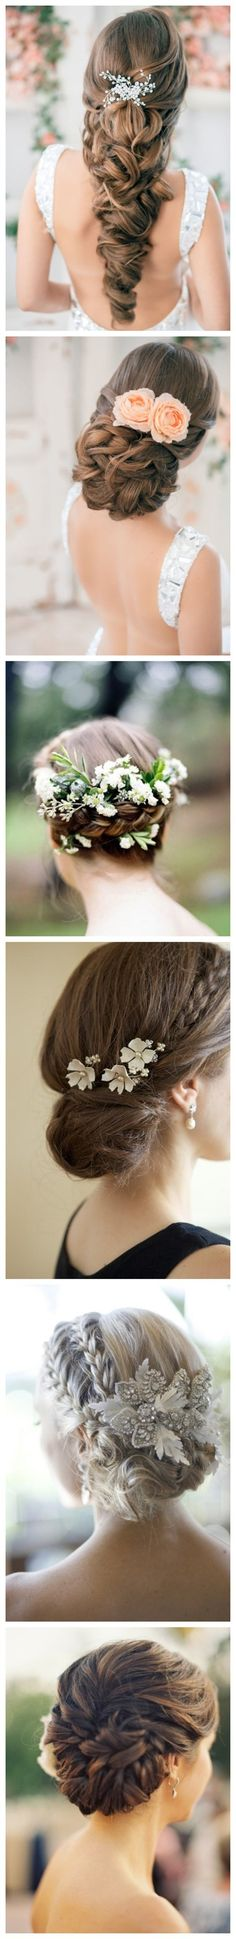 so pretty.. Maybe I should put a flower in my hair? I like #4